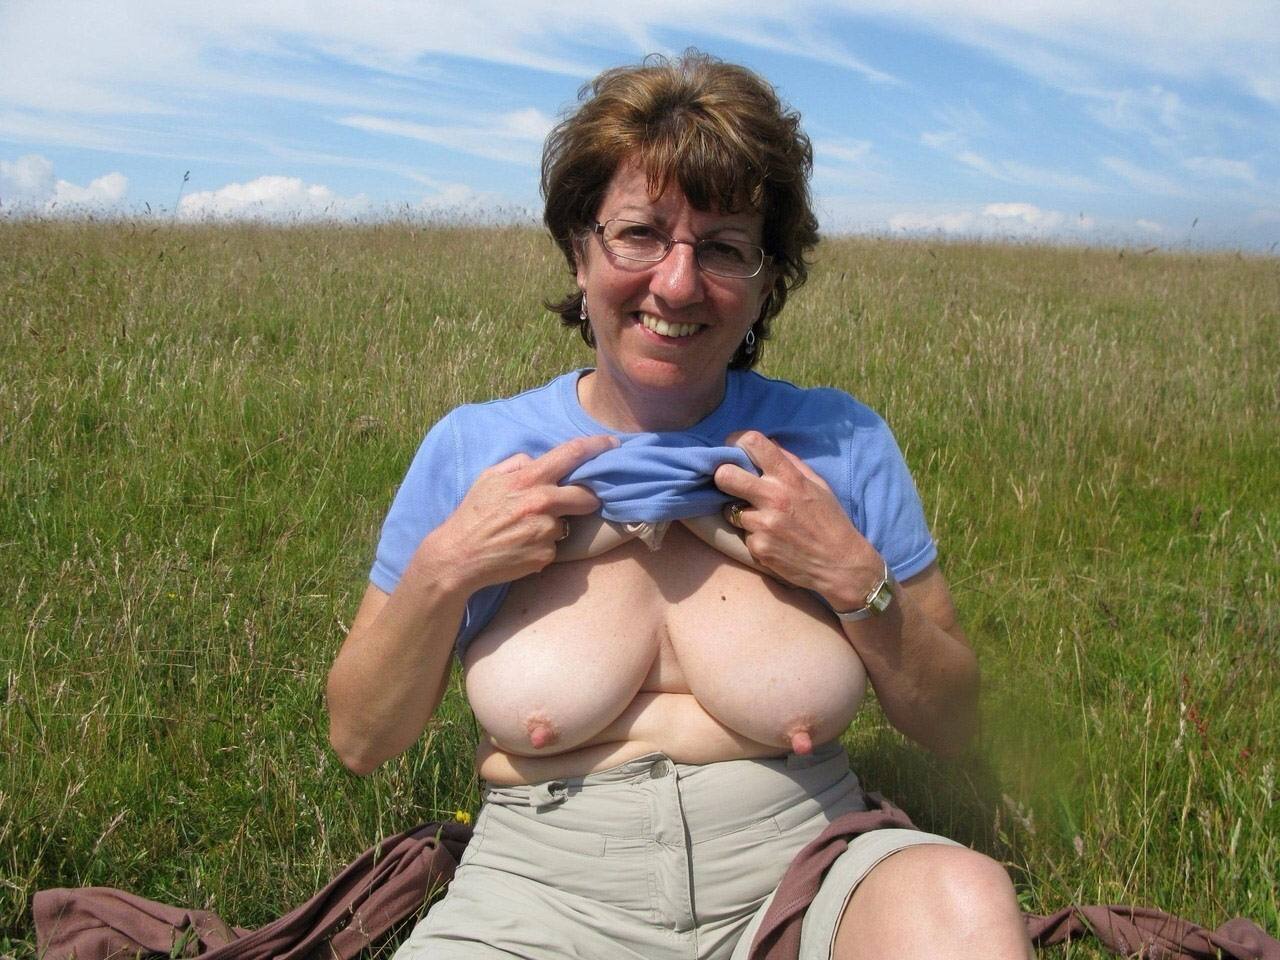 Mature women showing tits